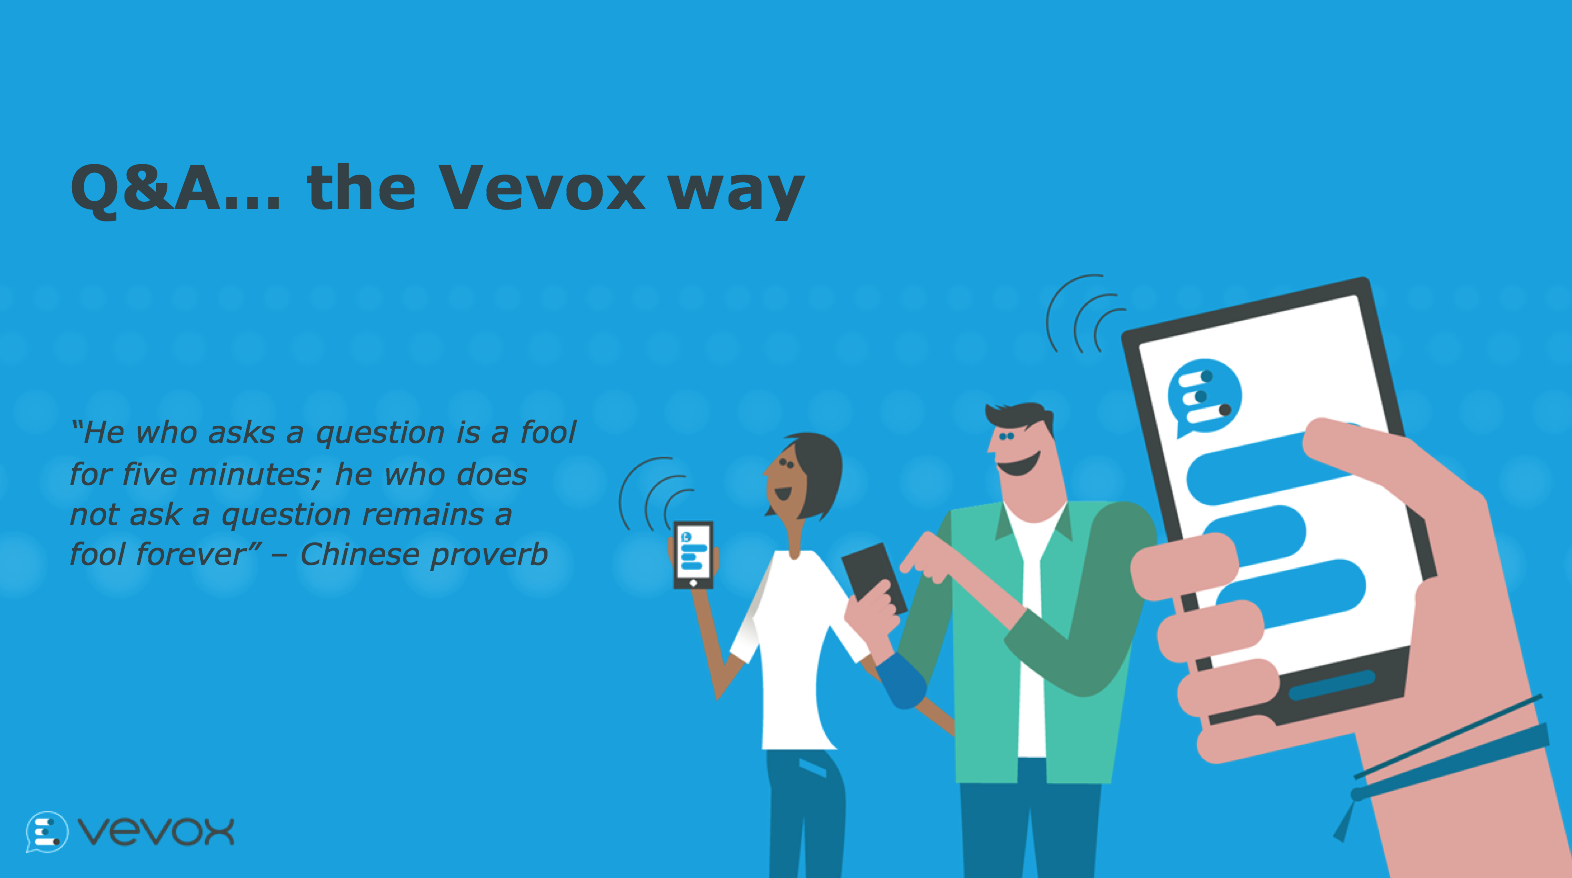 Running Q&A the Vevox Way